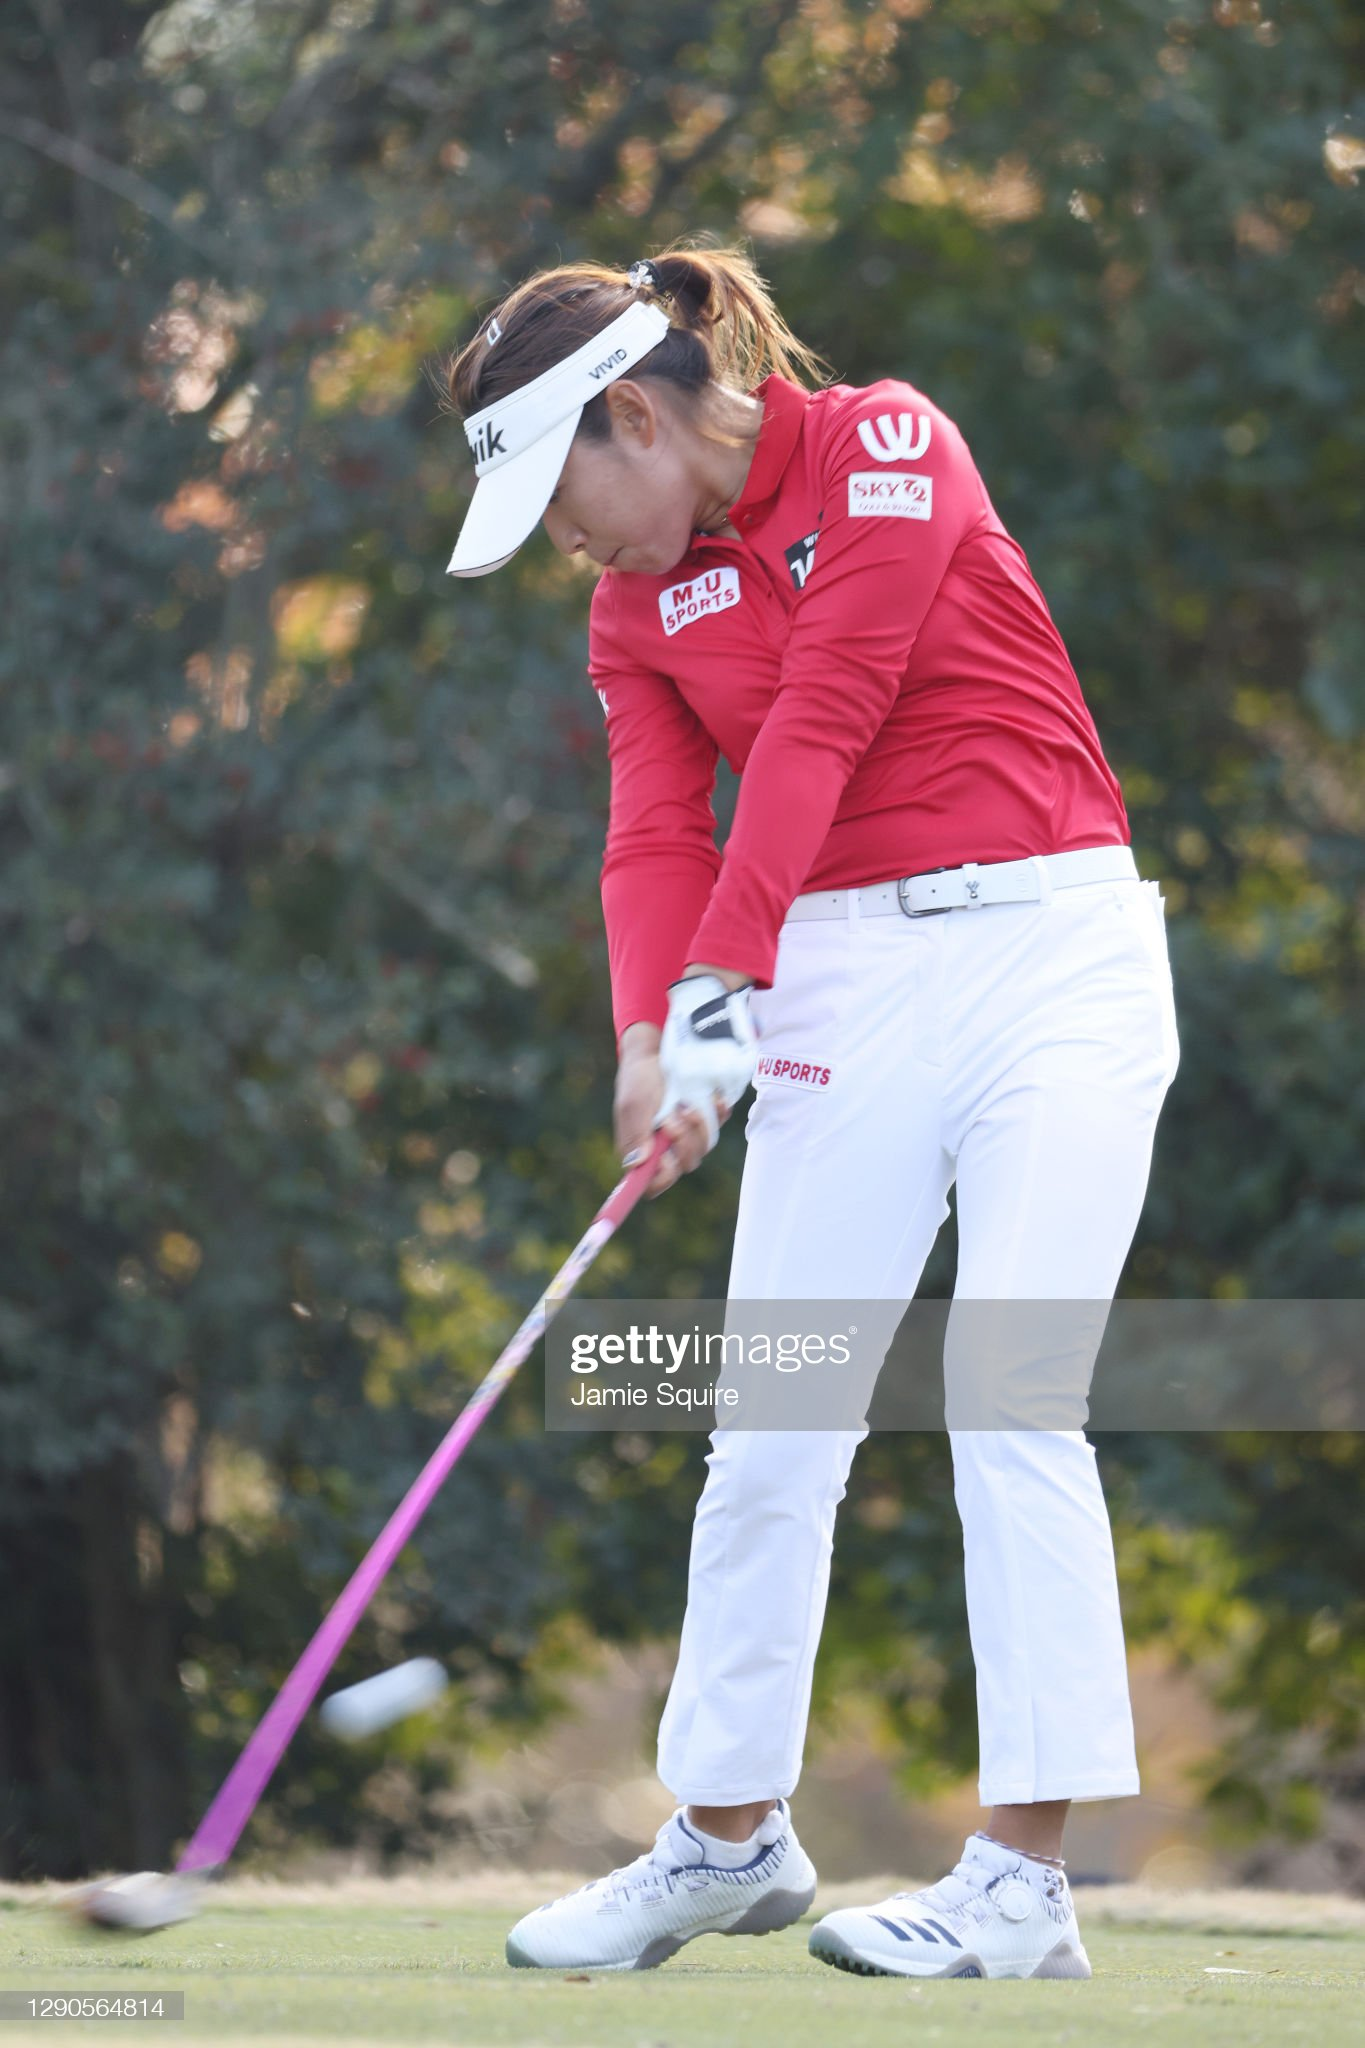 https://media.gettyimages.com/photos/mi-hyang-lee-of-korea-plays-her-shot-from-the-12th-tee-during-the-picture-id1290564814?s=2048x2048